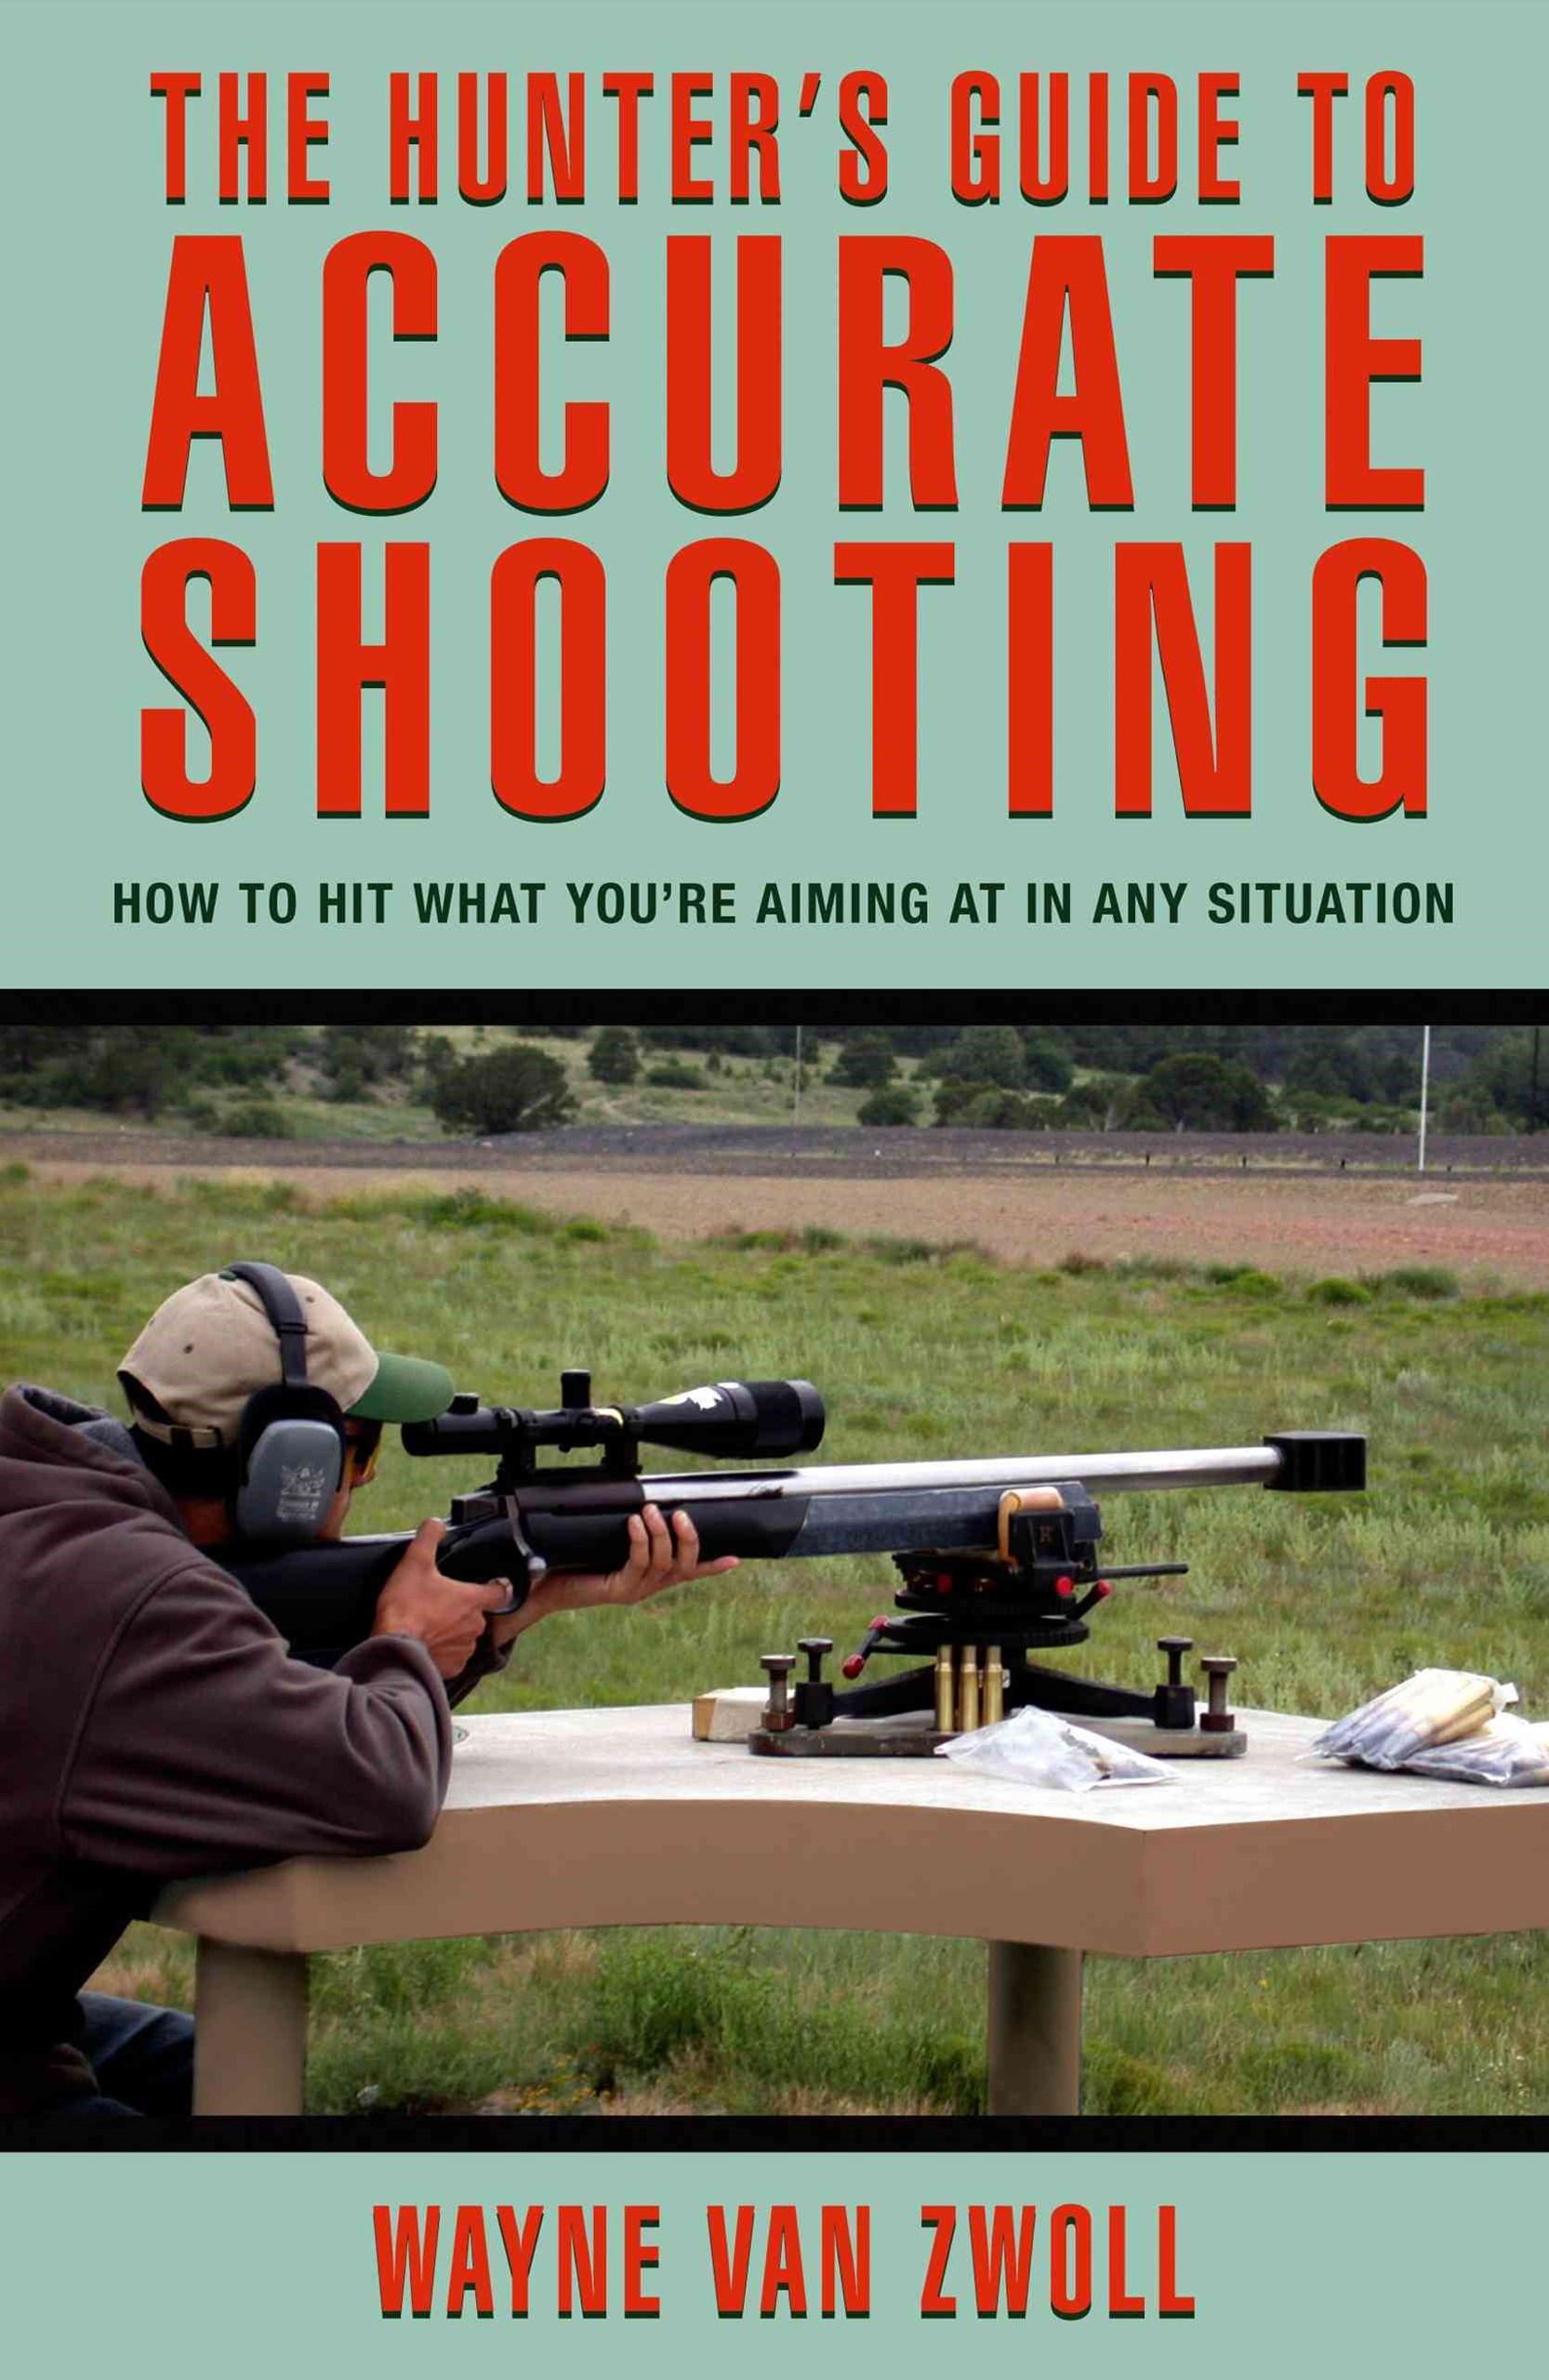 The Hunter's Guide to Accurate Shooting